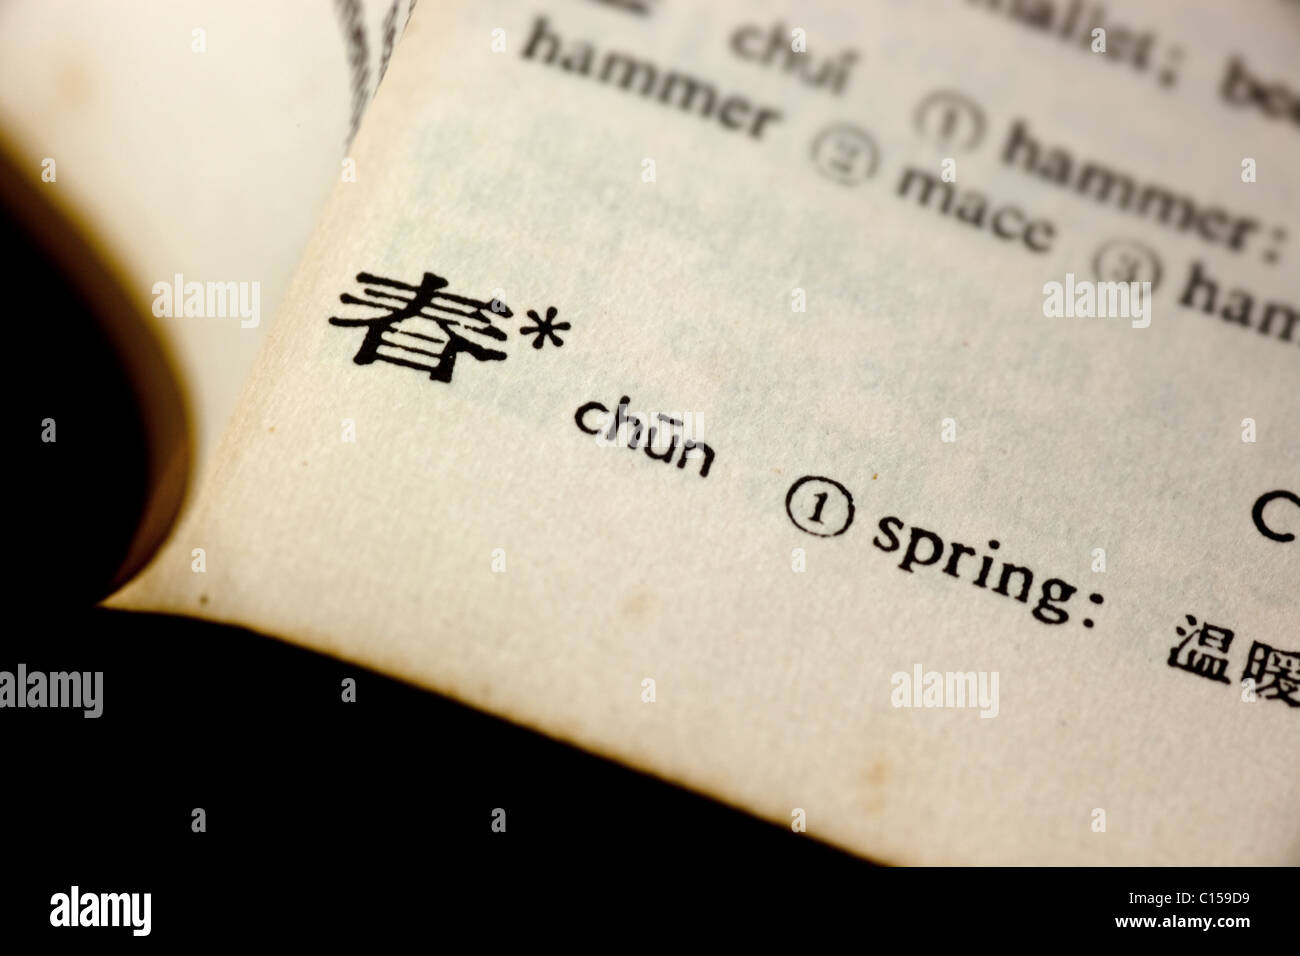 Spring written in Chinese in a Chinese-English translation dictionary - Stock Image